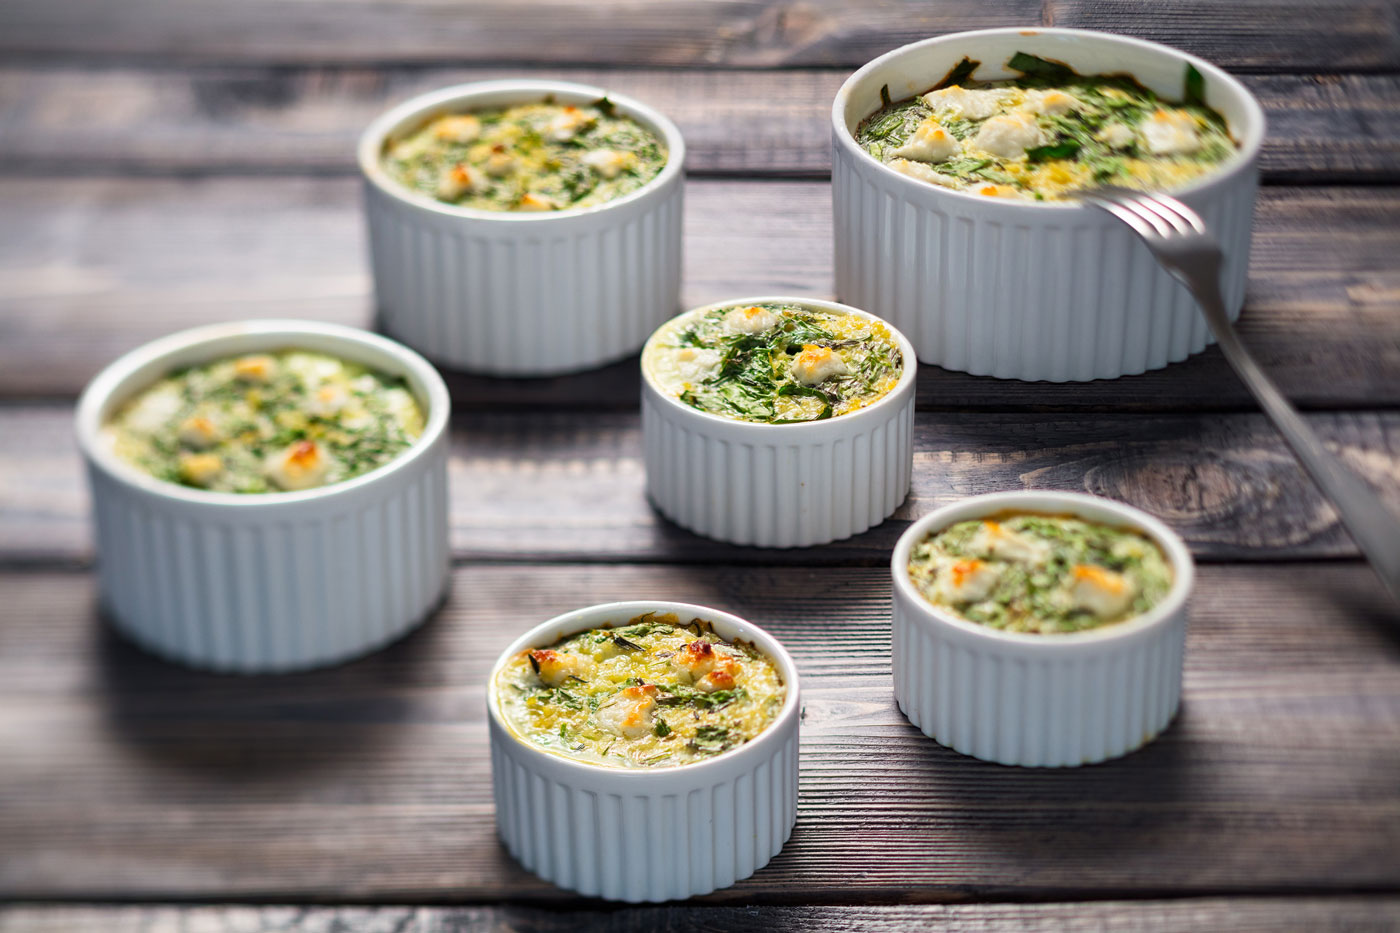 Recipe image of casserole with spinach